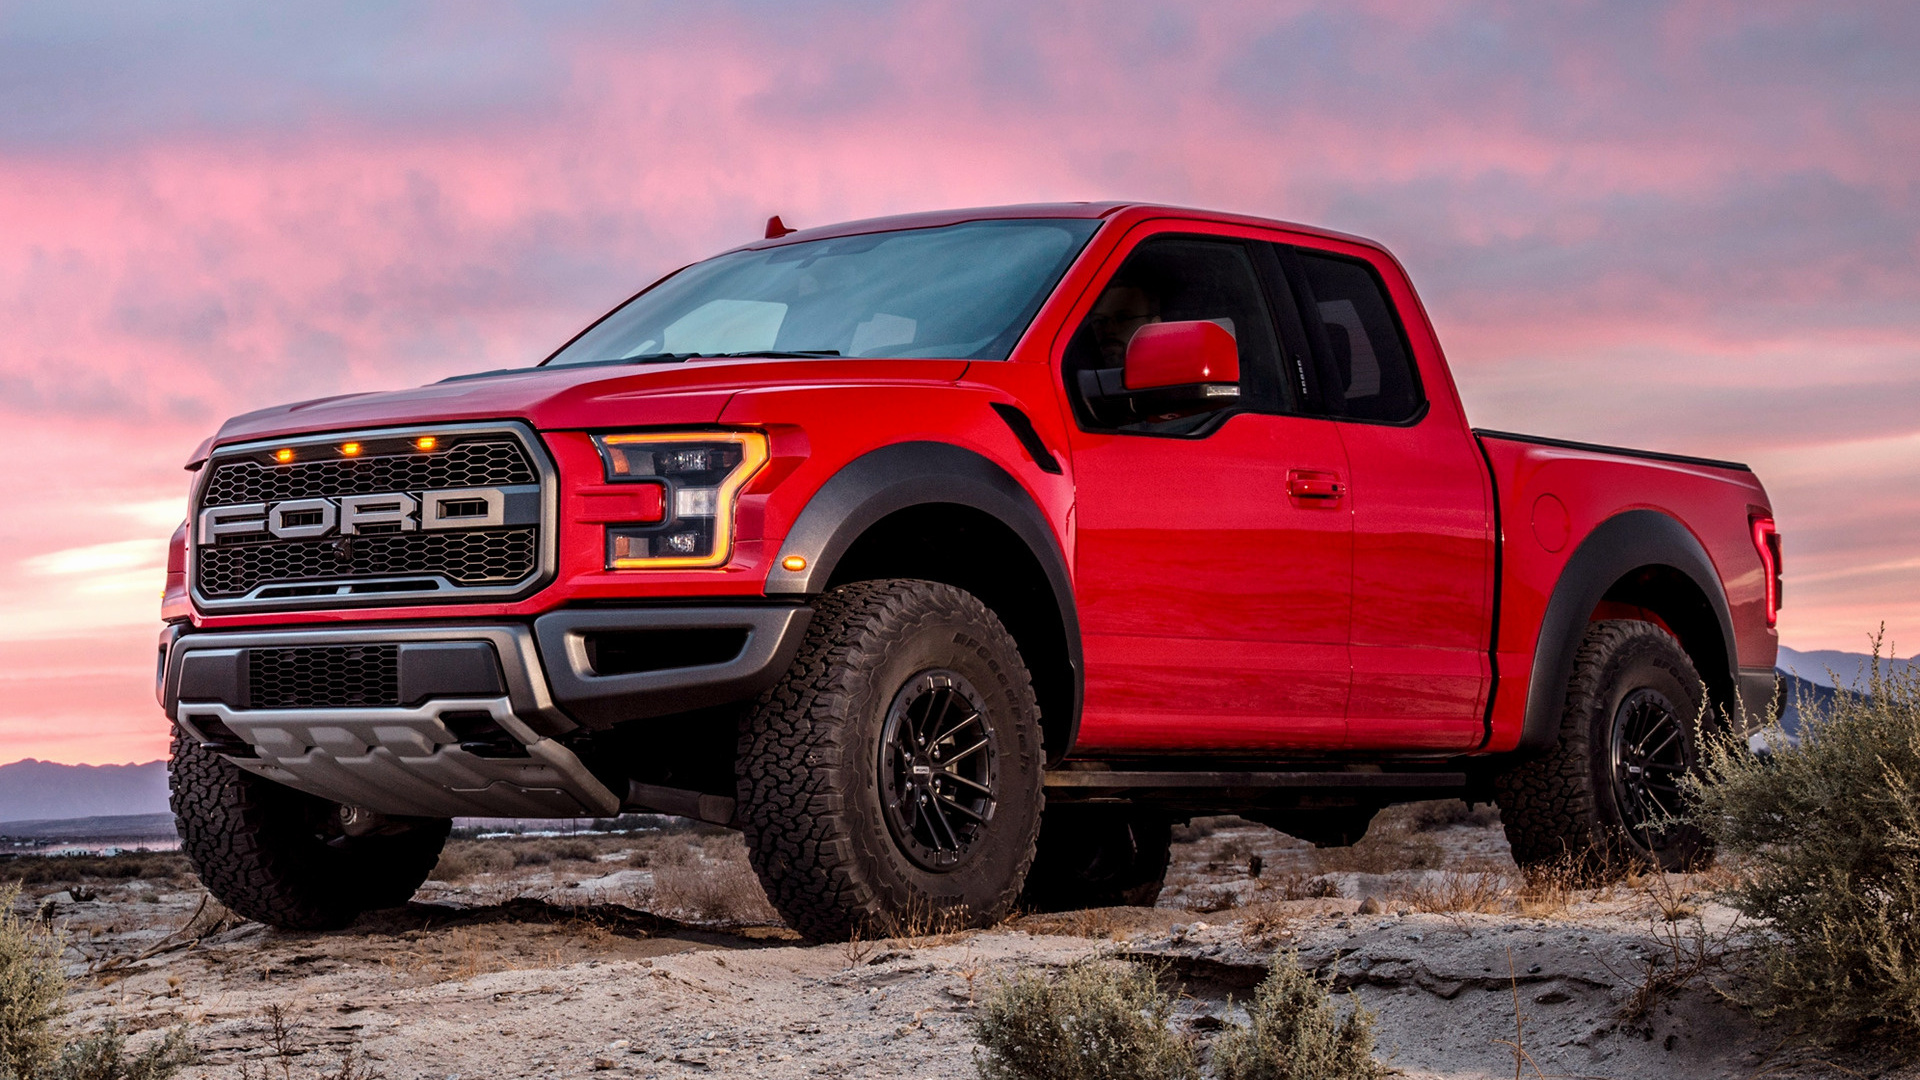 Ford Raptor Logo >> 2019 Ford F-150 Raptor SuperCab - Wallpapers and HD Images | Car Pixel